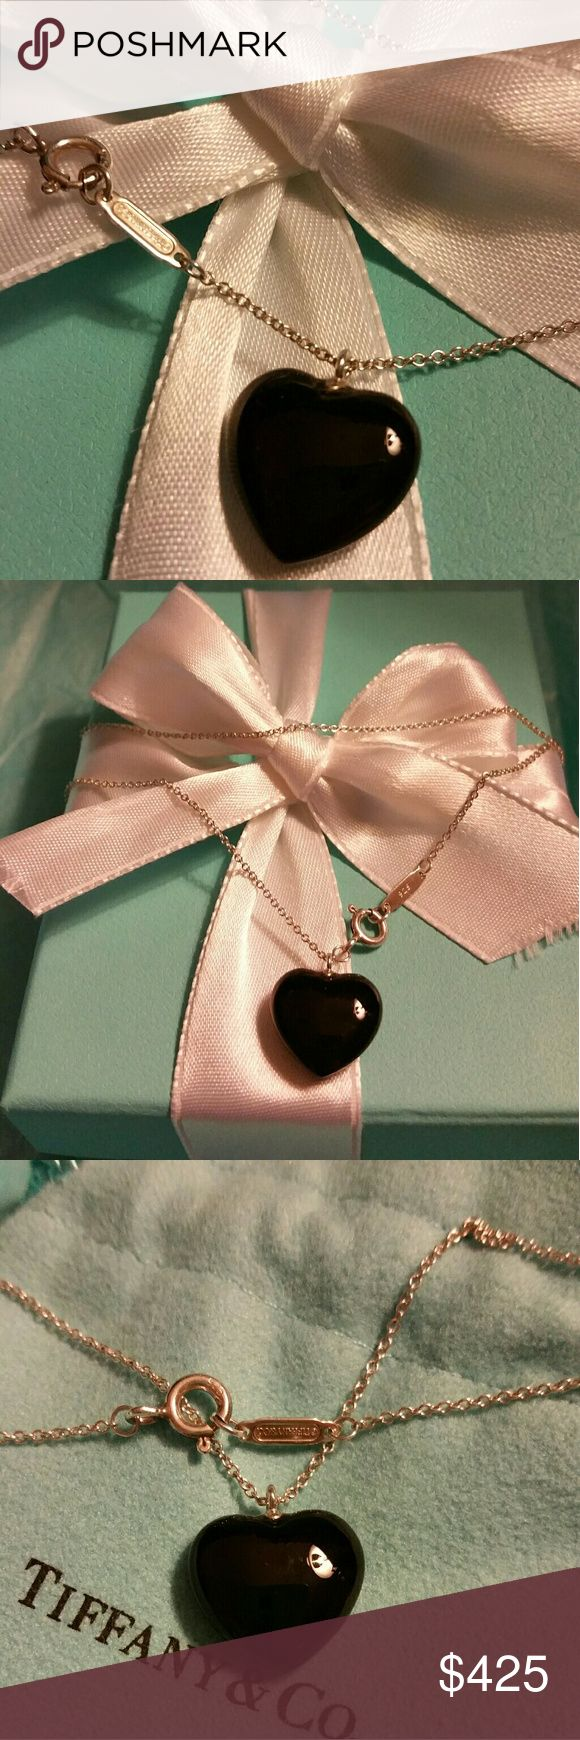 "Tiffany & Co. Onyx Heart Necklace Beautiful Heart Pendant on a 16"" Tiffany & Co. Necklace! See hallmark! Pendant is Not removable from necklace. Just cleaned at Tiffany's and ready to wear or Gifted! Makes a great Mother's Day or Graduation gift! Includes Tiffany pouch (pictured). Displays not included. Also see the same necklace in Turquoise and Rhodonite! Prices reflect stone type. Tiffany & Co. Jewelry Necklaces"